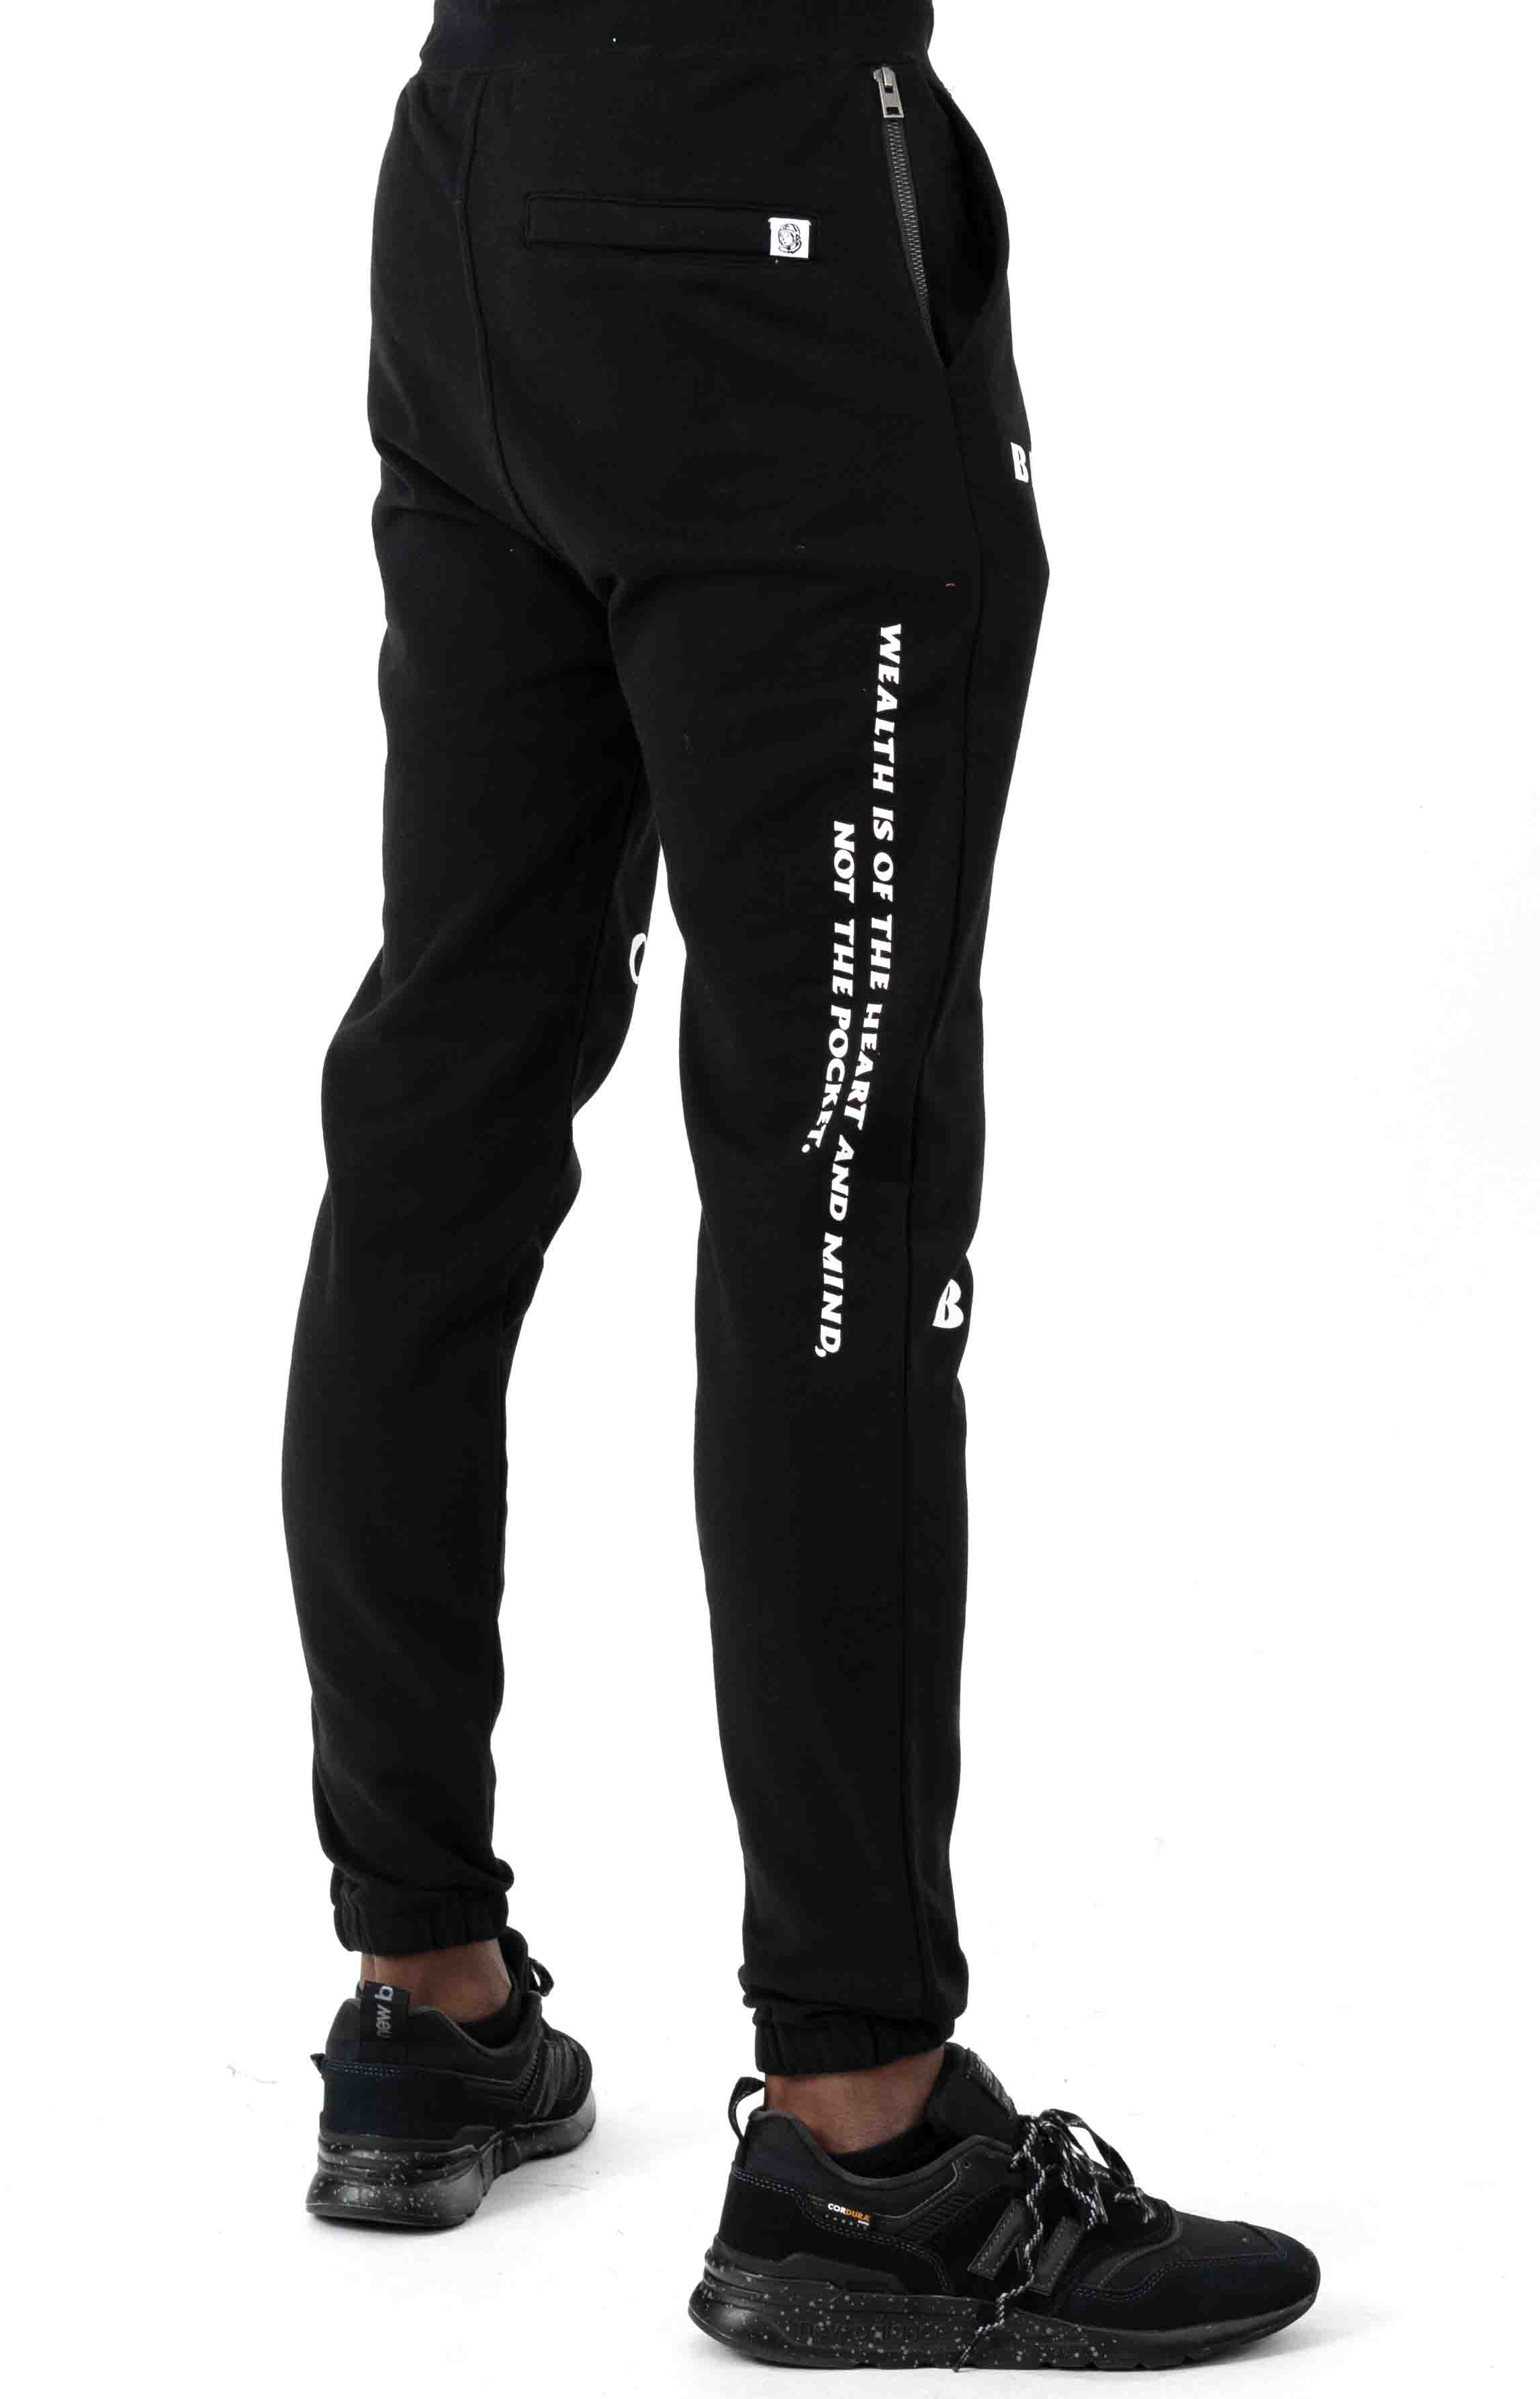 BB Aesthetics Jogger - Black 3